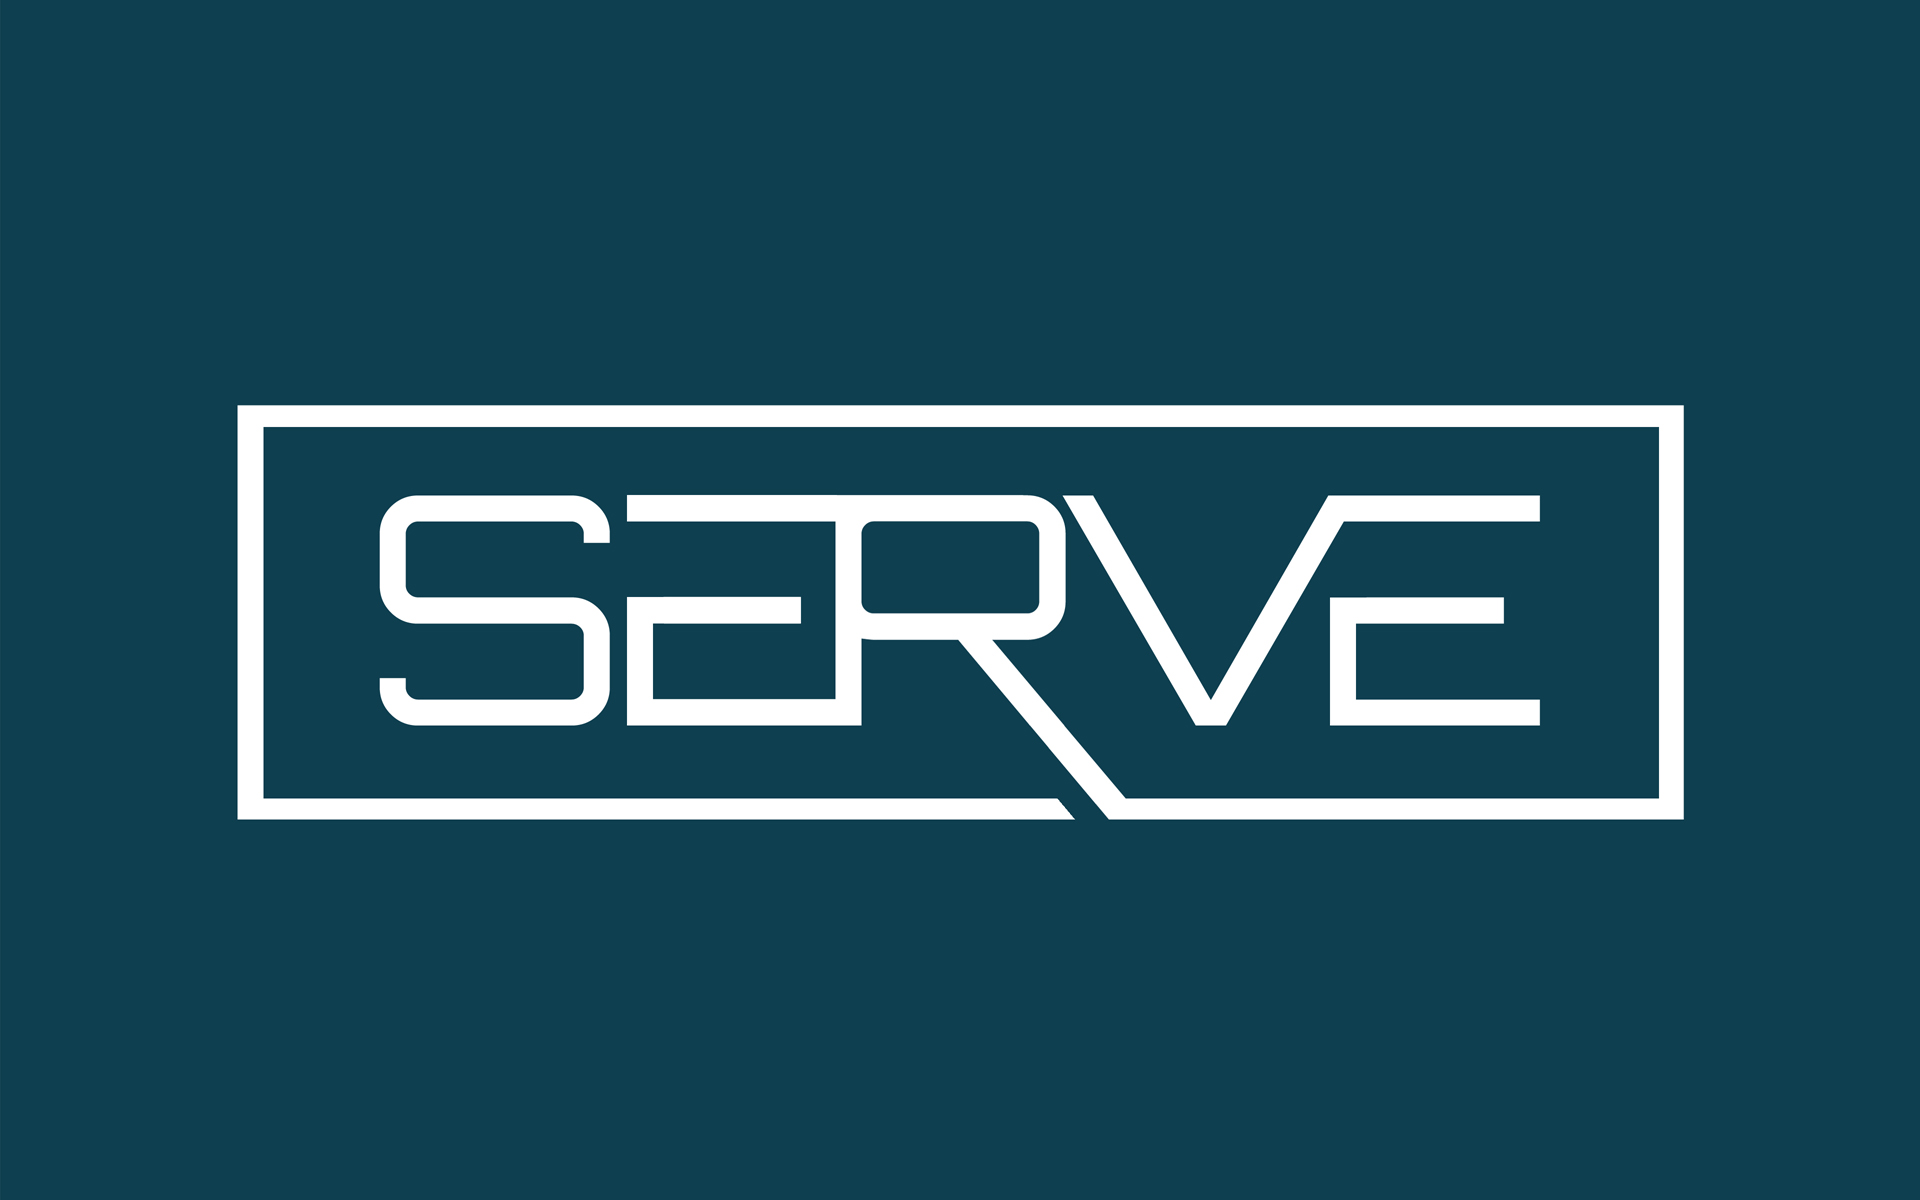 Serve Final 16x10 resized.jpg